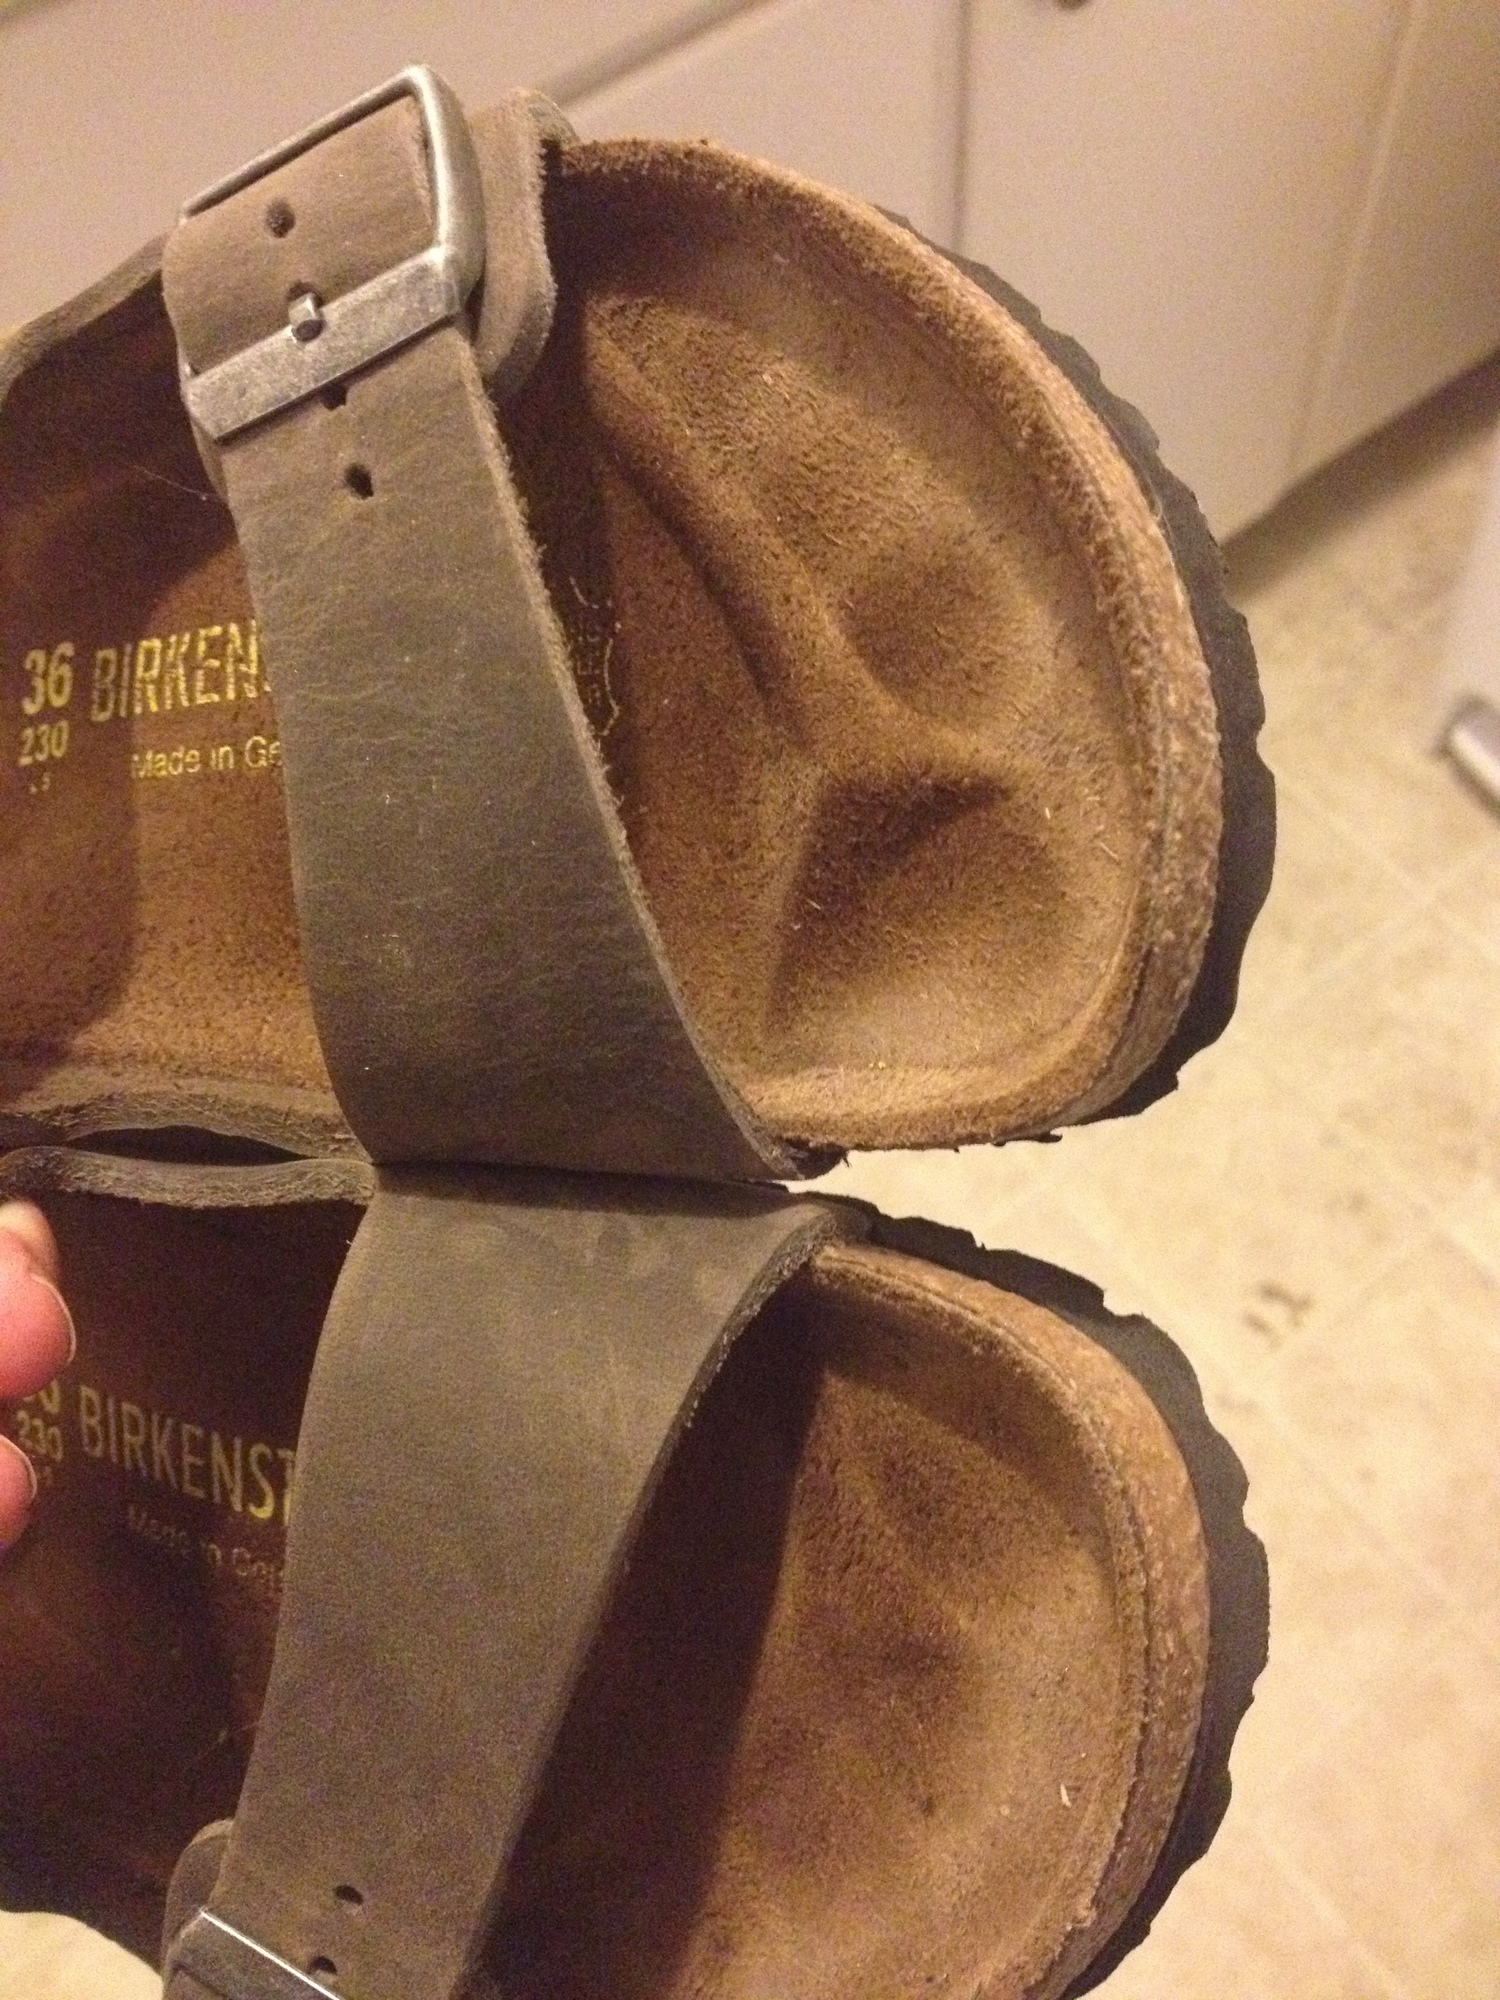 59a51301e3f Here is a gallery of images of the pair I m wearing right out of the box   Birkenstock